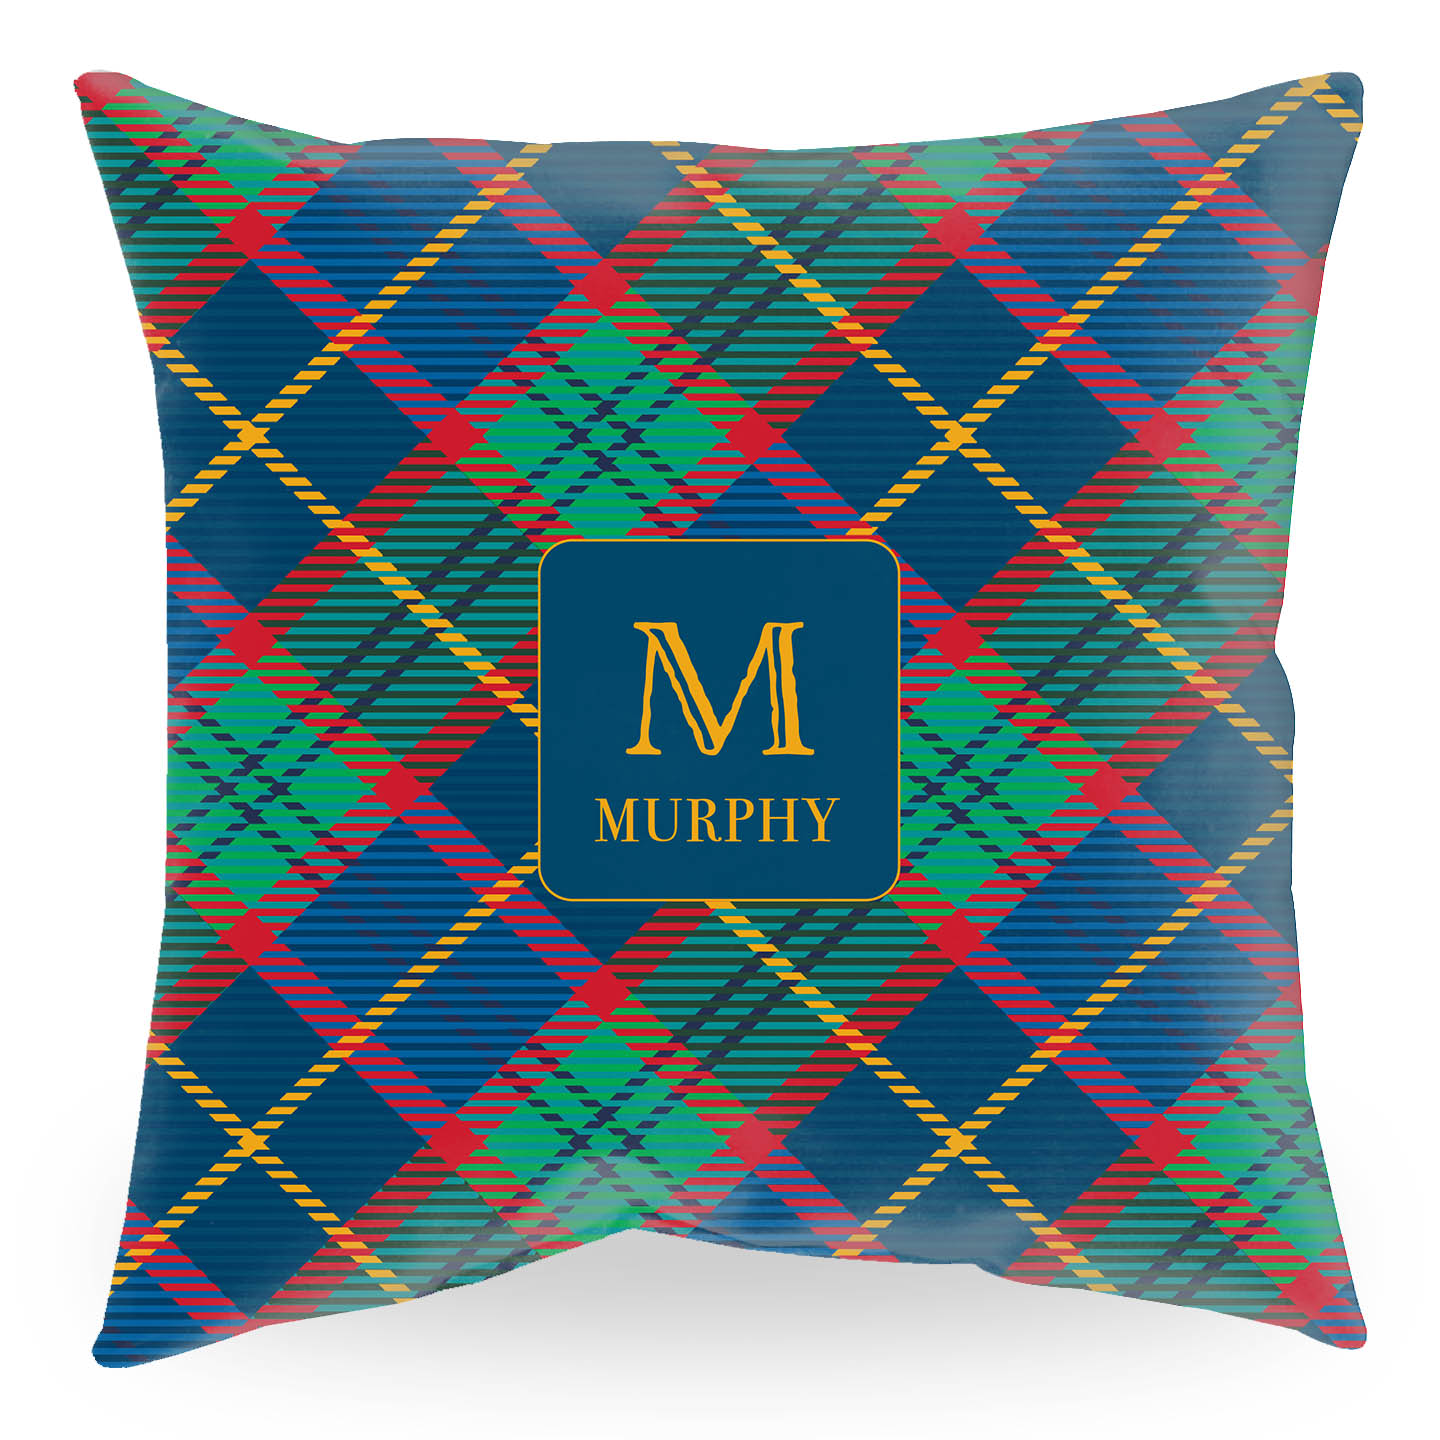 Tartan Throw Pillow with Initial and Name in Maize